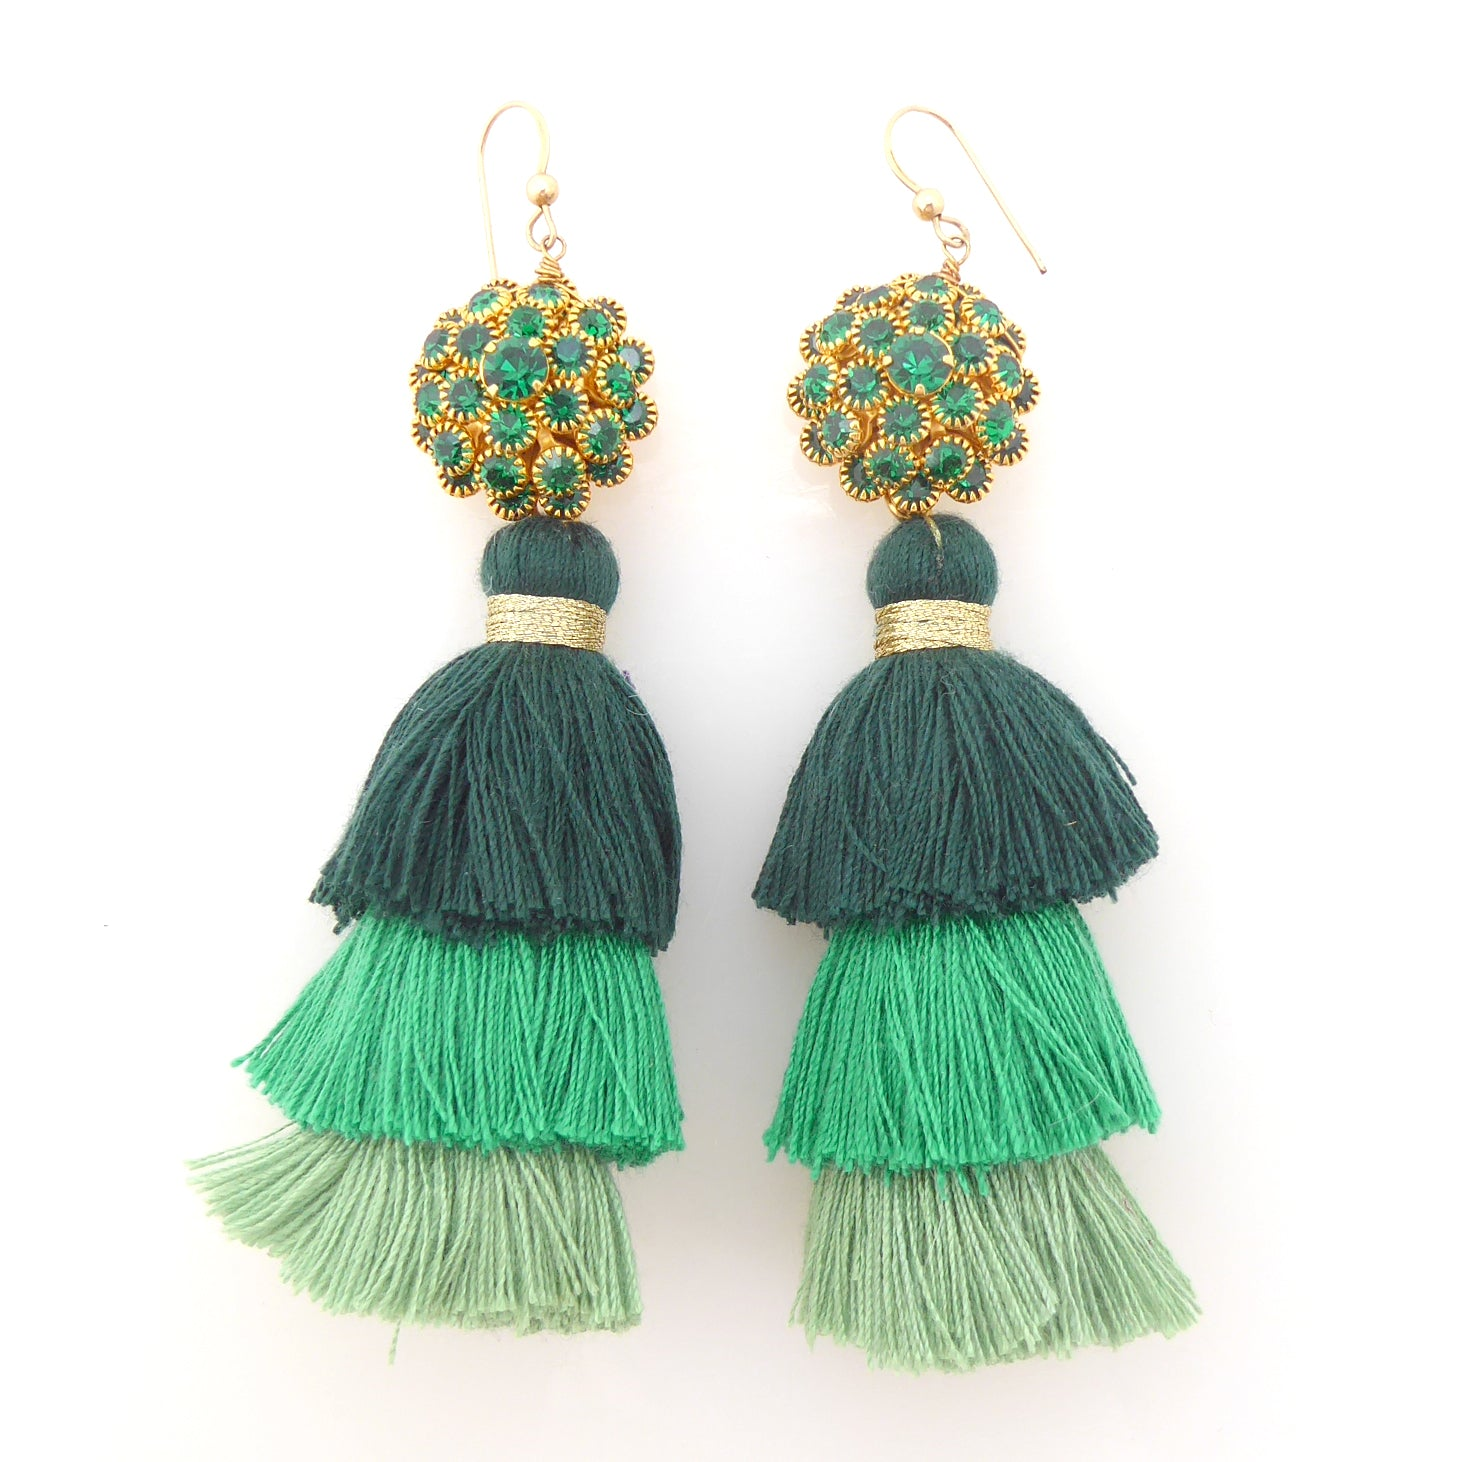 Green rhinestone tassel earrings by Jenny Dayco 1